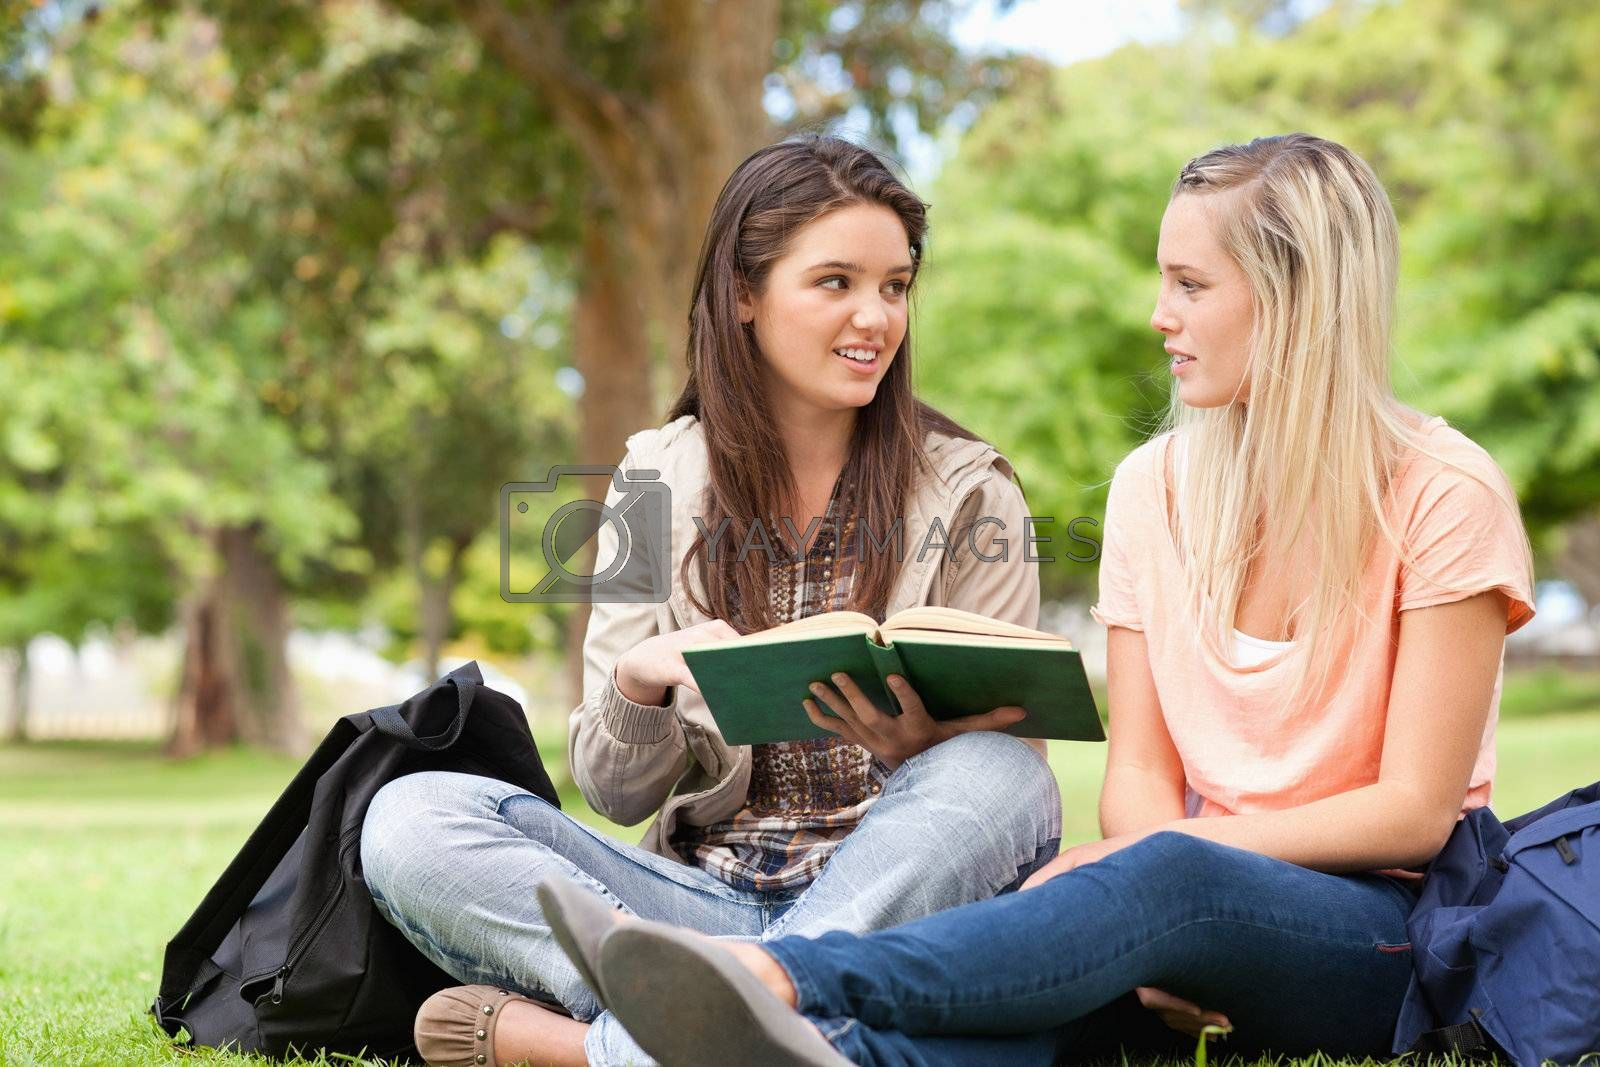 Female teenagers sitting while studying with a textbook in a park